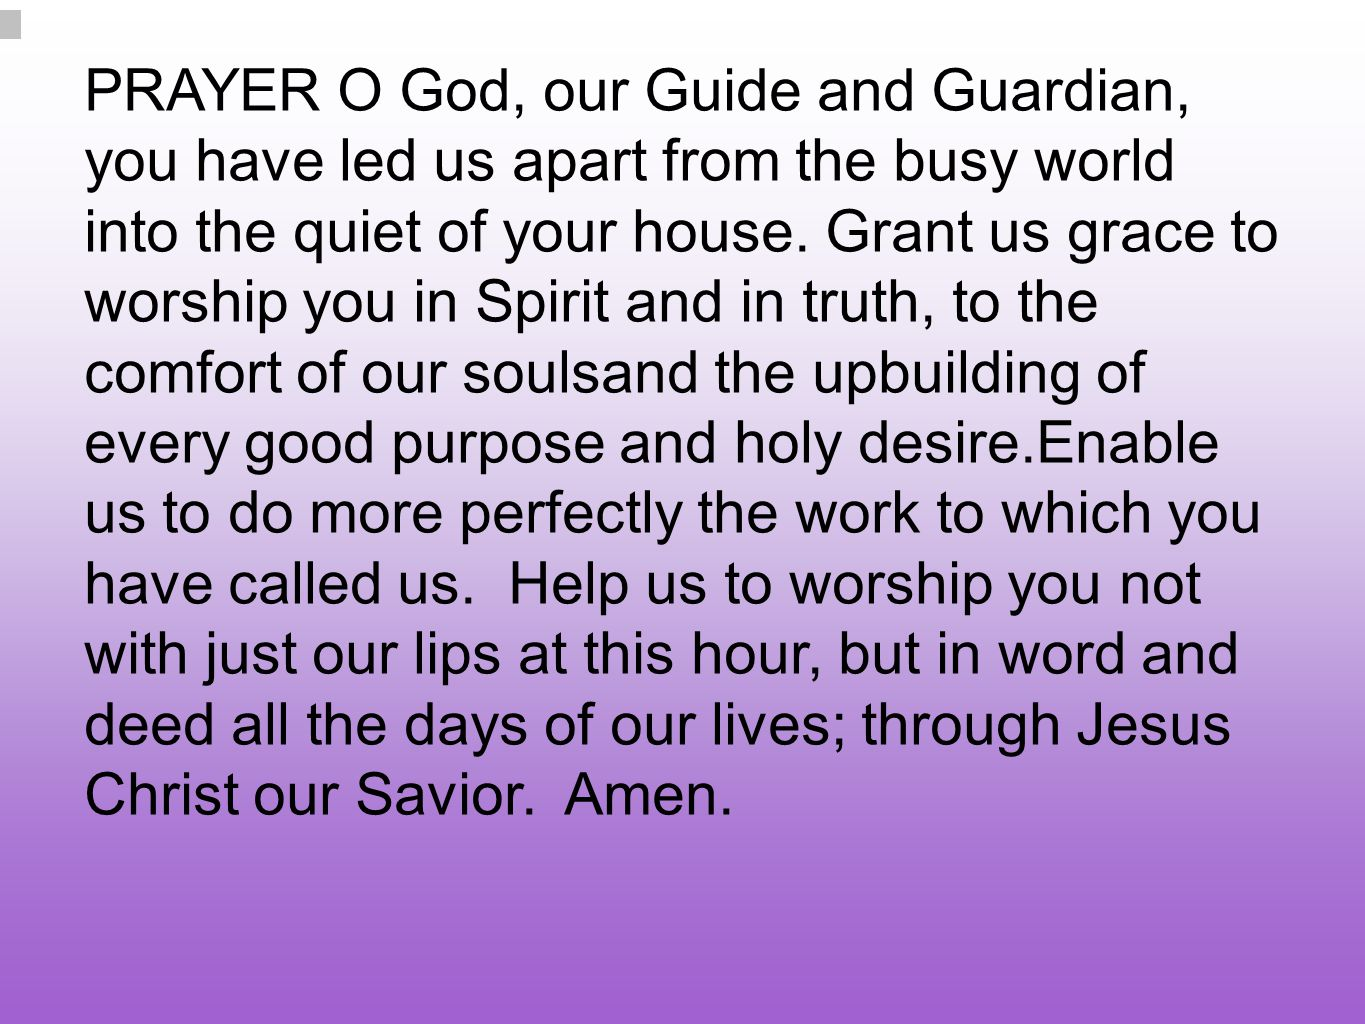 PRAYER O God, our Guide and Guardian, you have led us apart from the busy world into the quiet of your house.